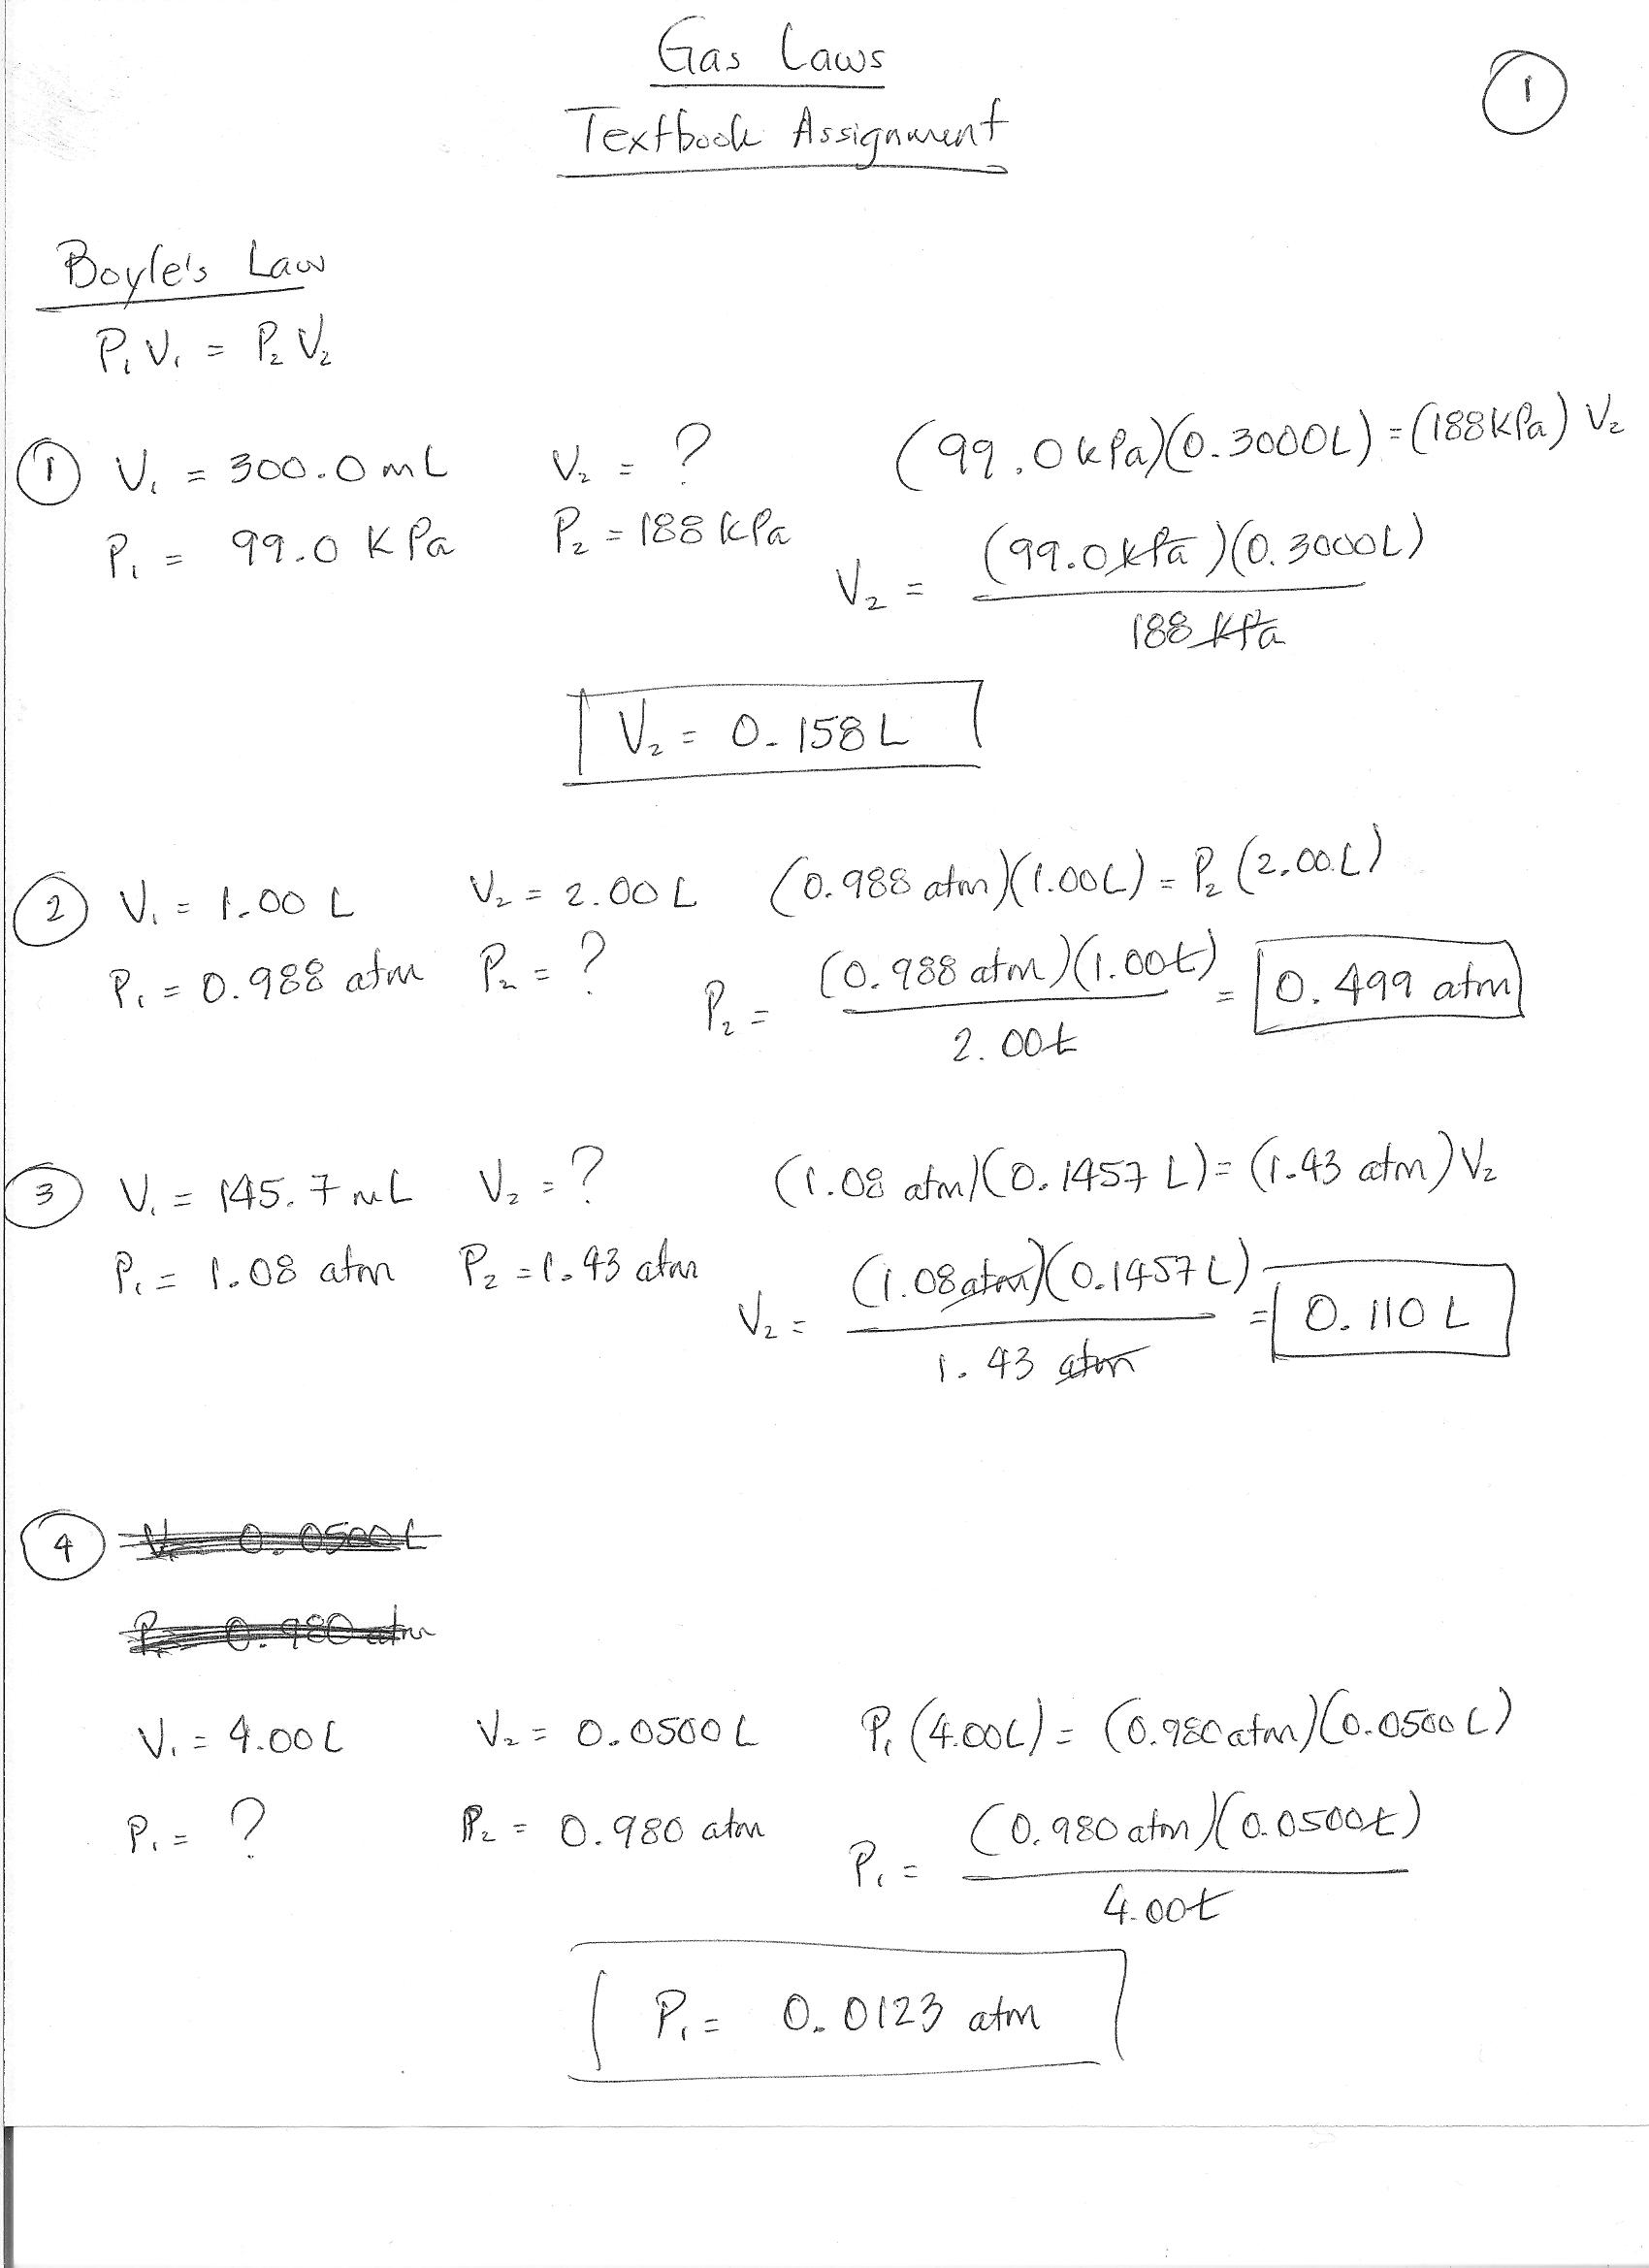 Gay Lussac Law Worksheet – Boyles and Charles Law Worksheet